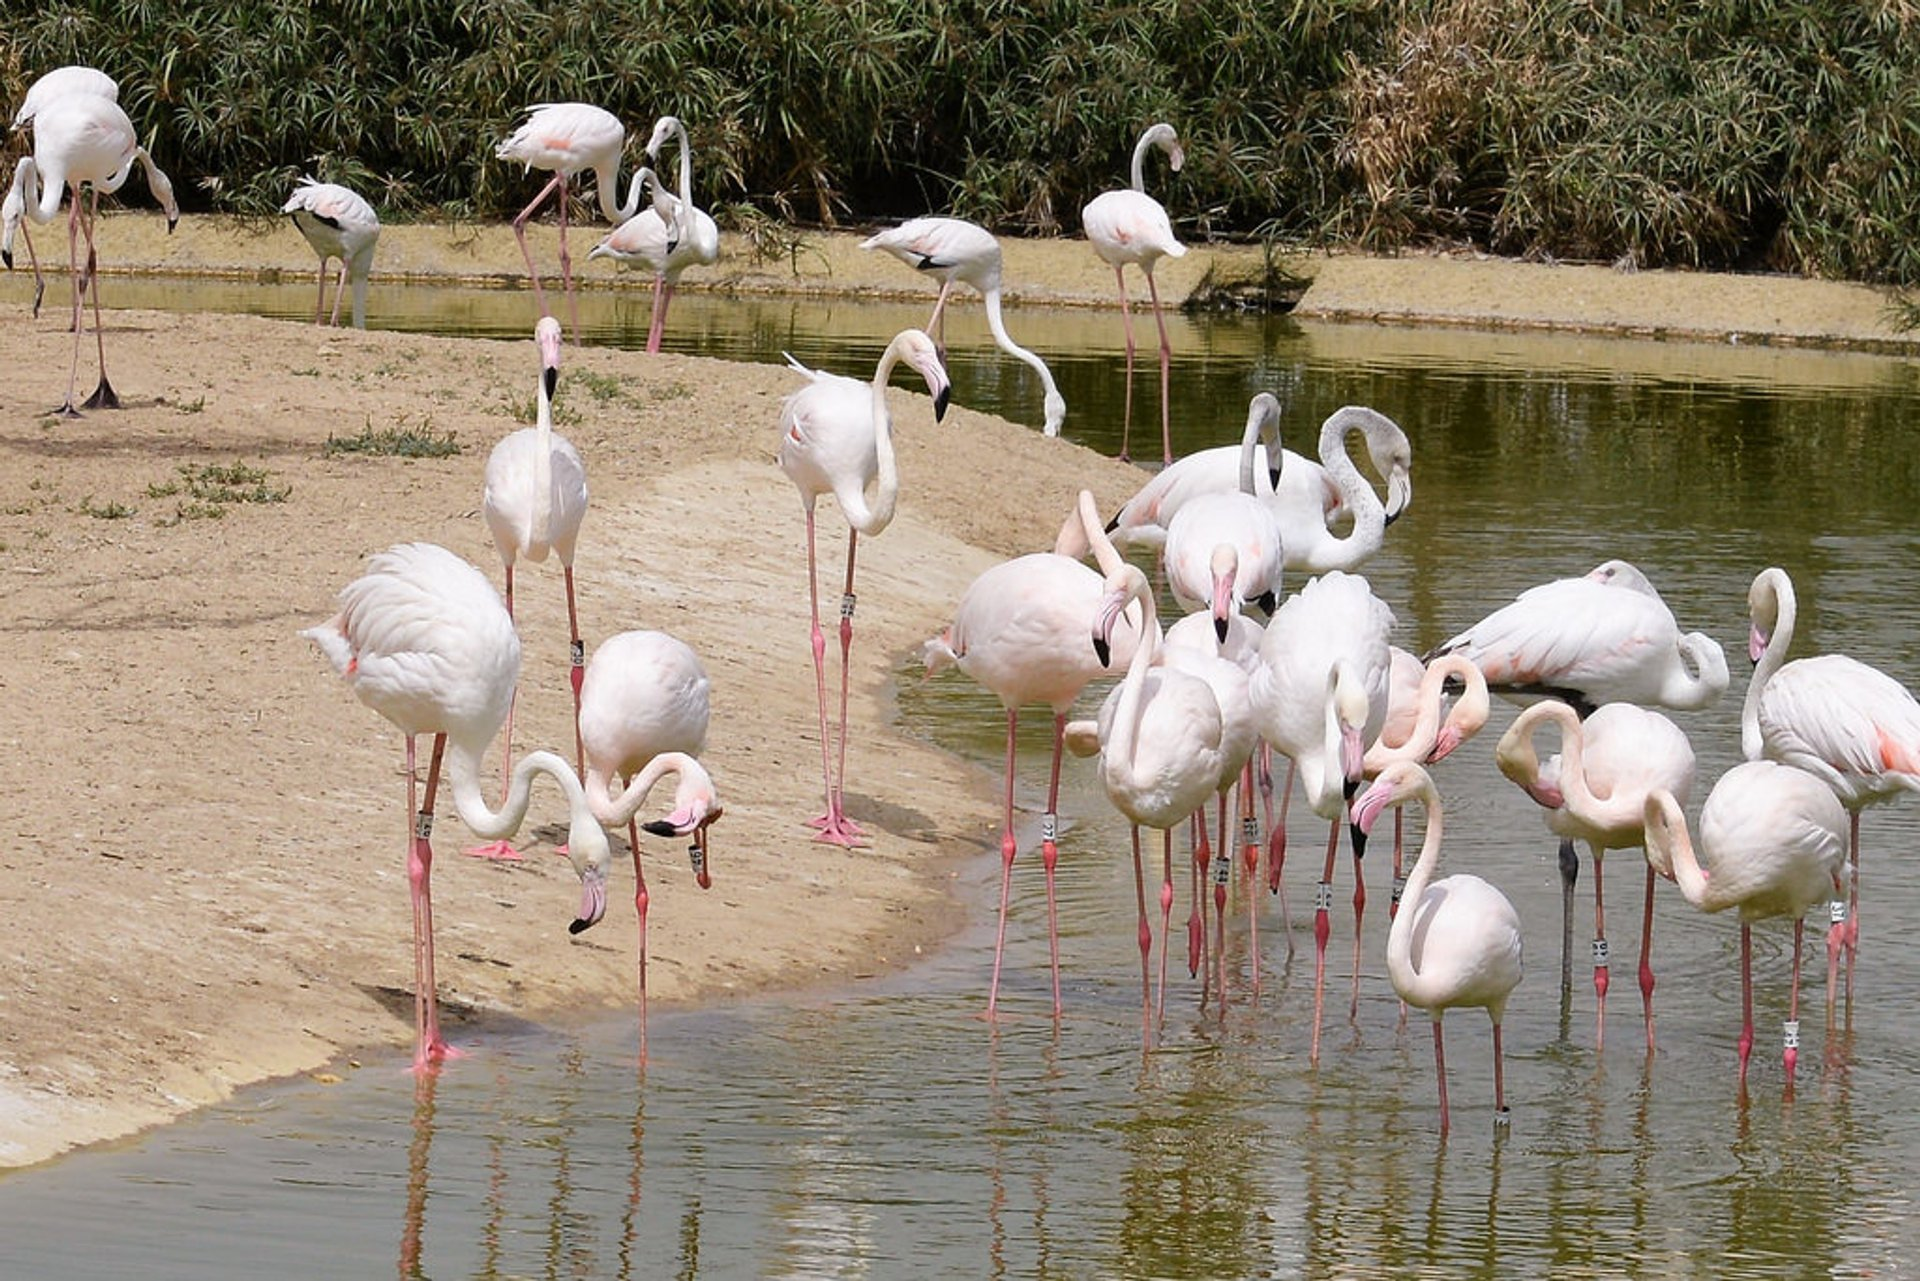 Flamingos of Dubai Safari Park 2020